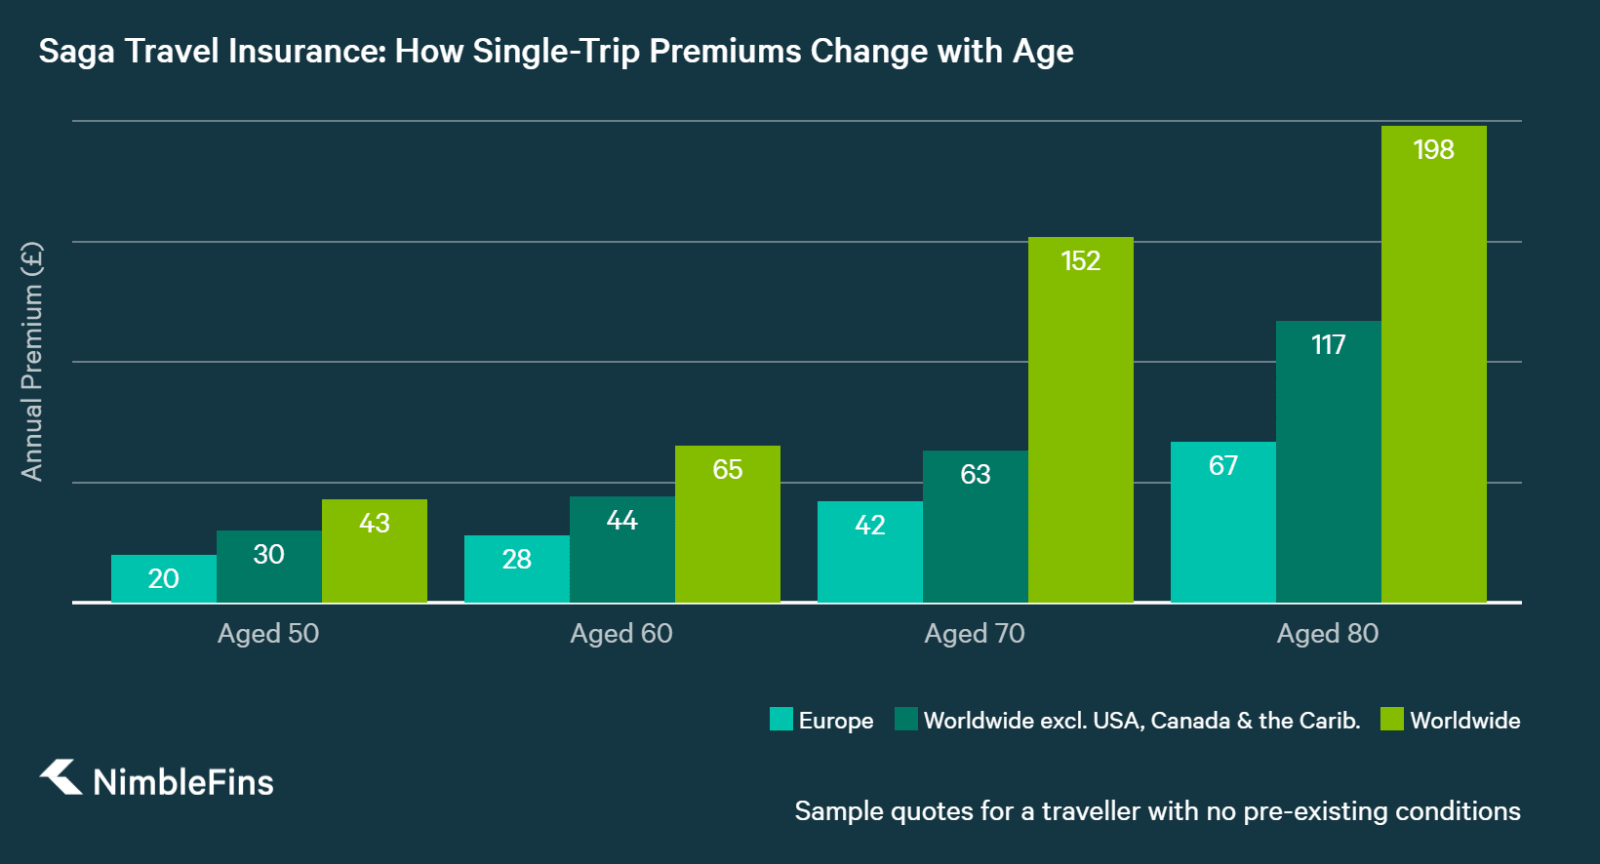 chart showing Saga single-trip travel insurance prices for those 50, 60, 70 and 80 years old